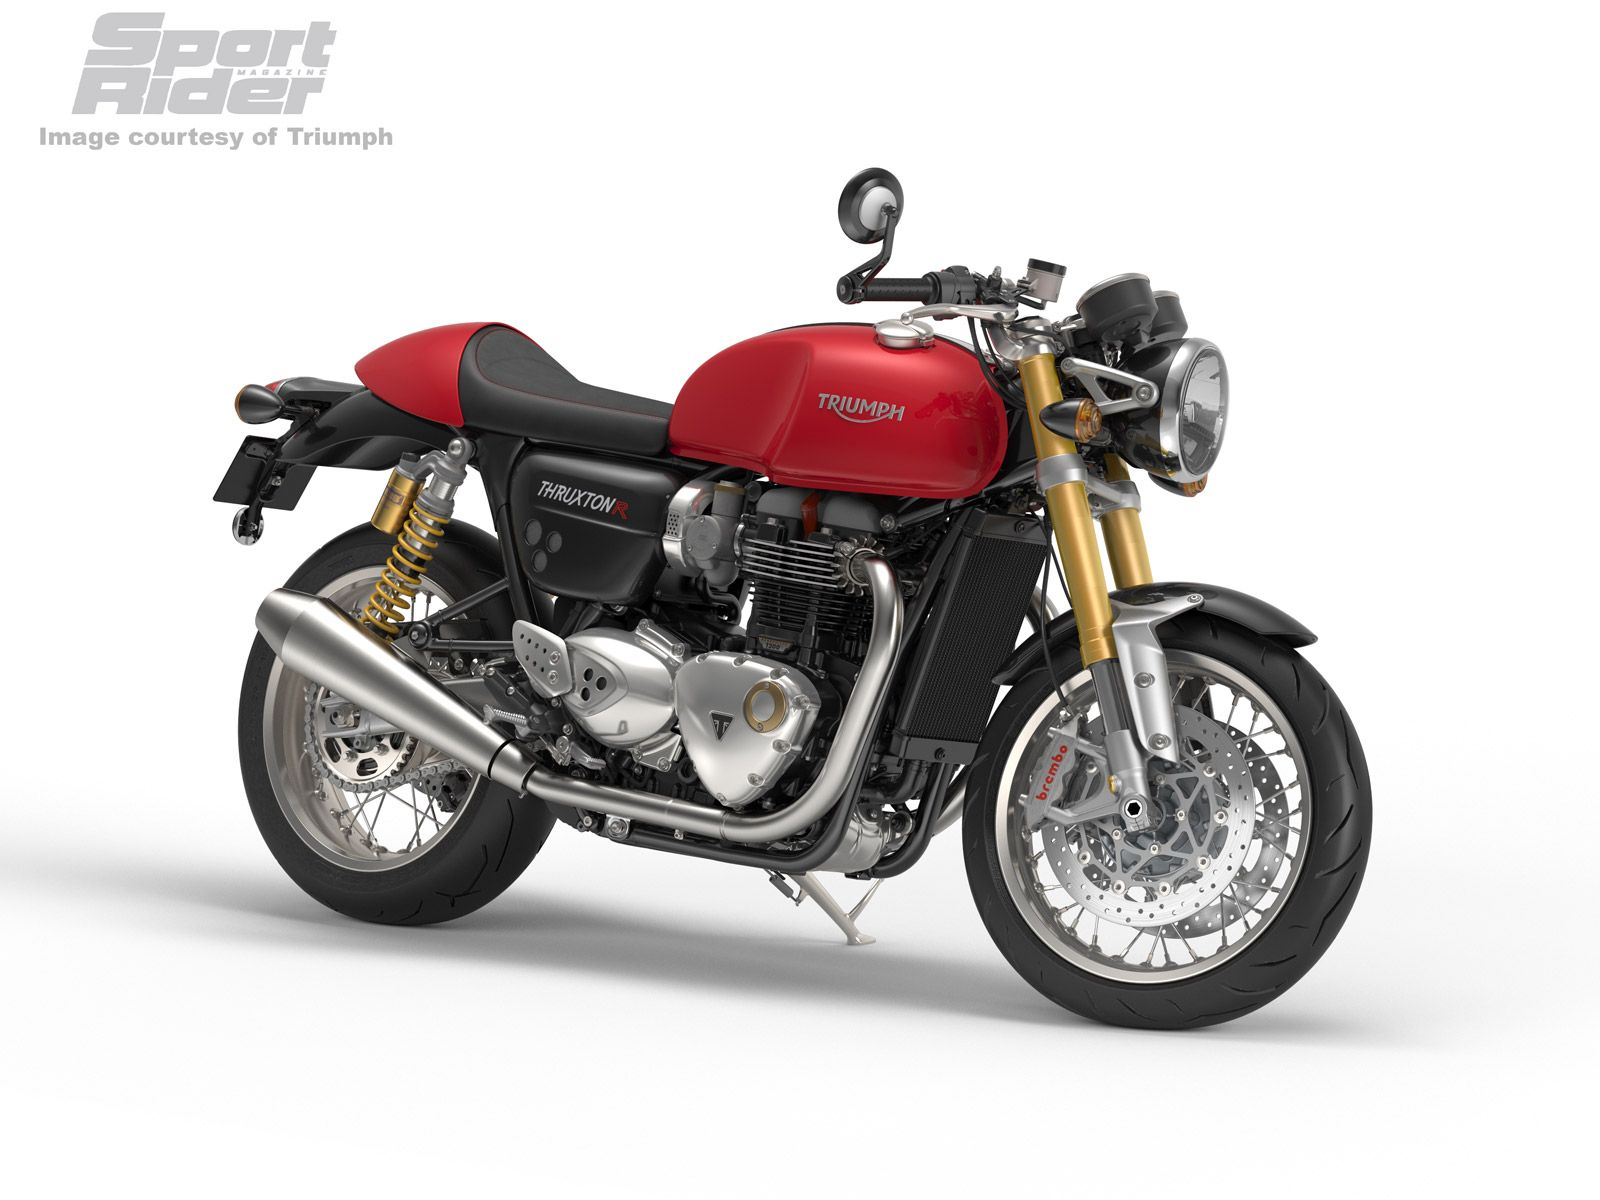 Triumph has announced a new lineup of five new models in its